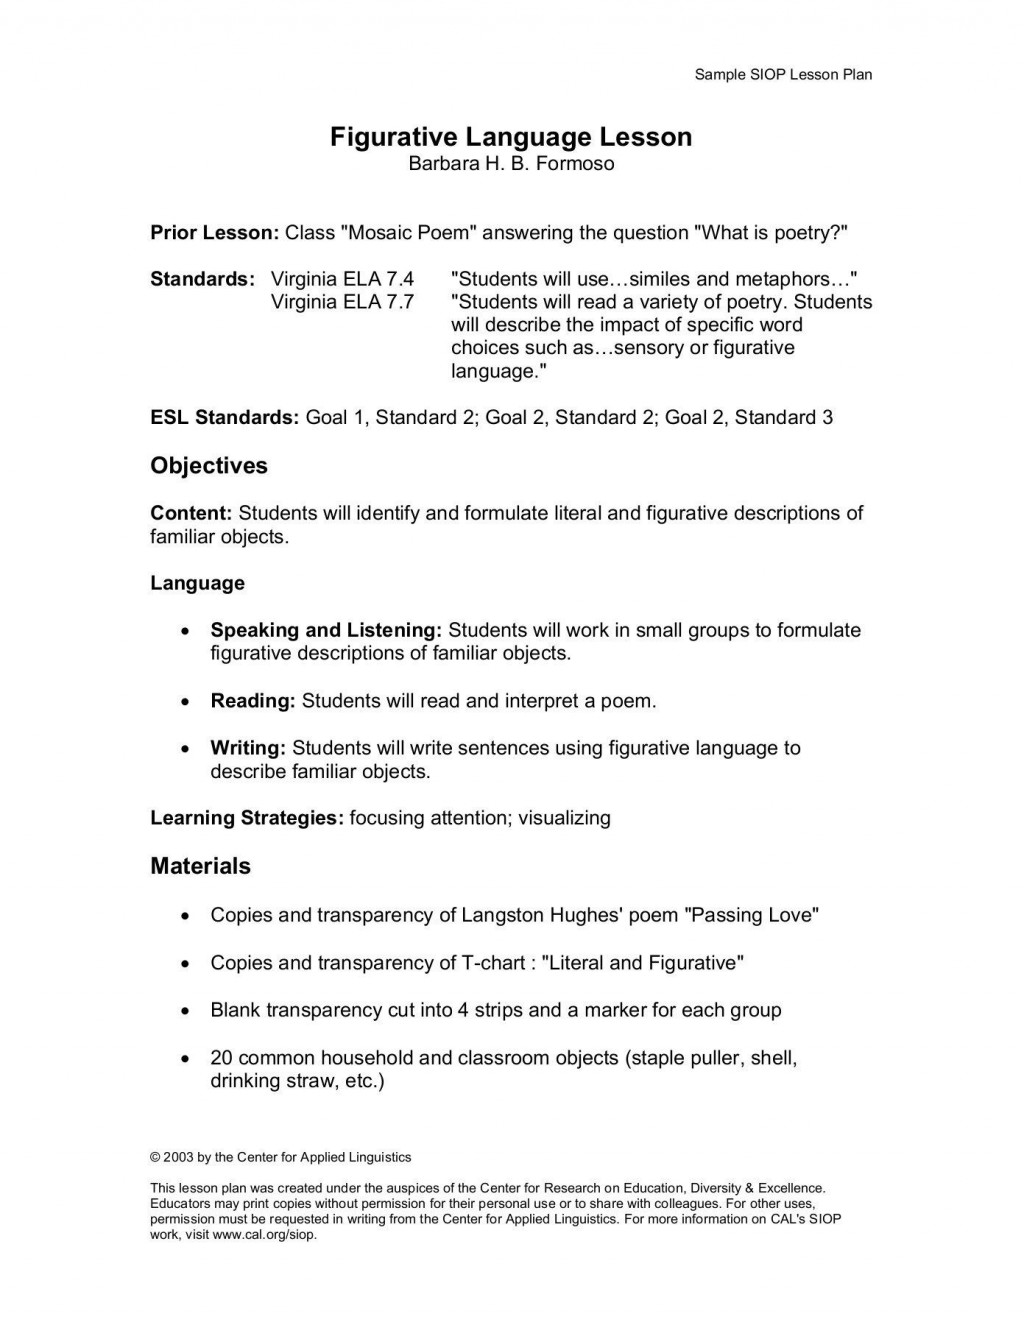 002 Wondrou Siop Lesson Plan Example First Grade Sample  1stLarge